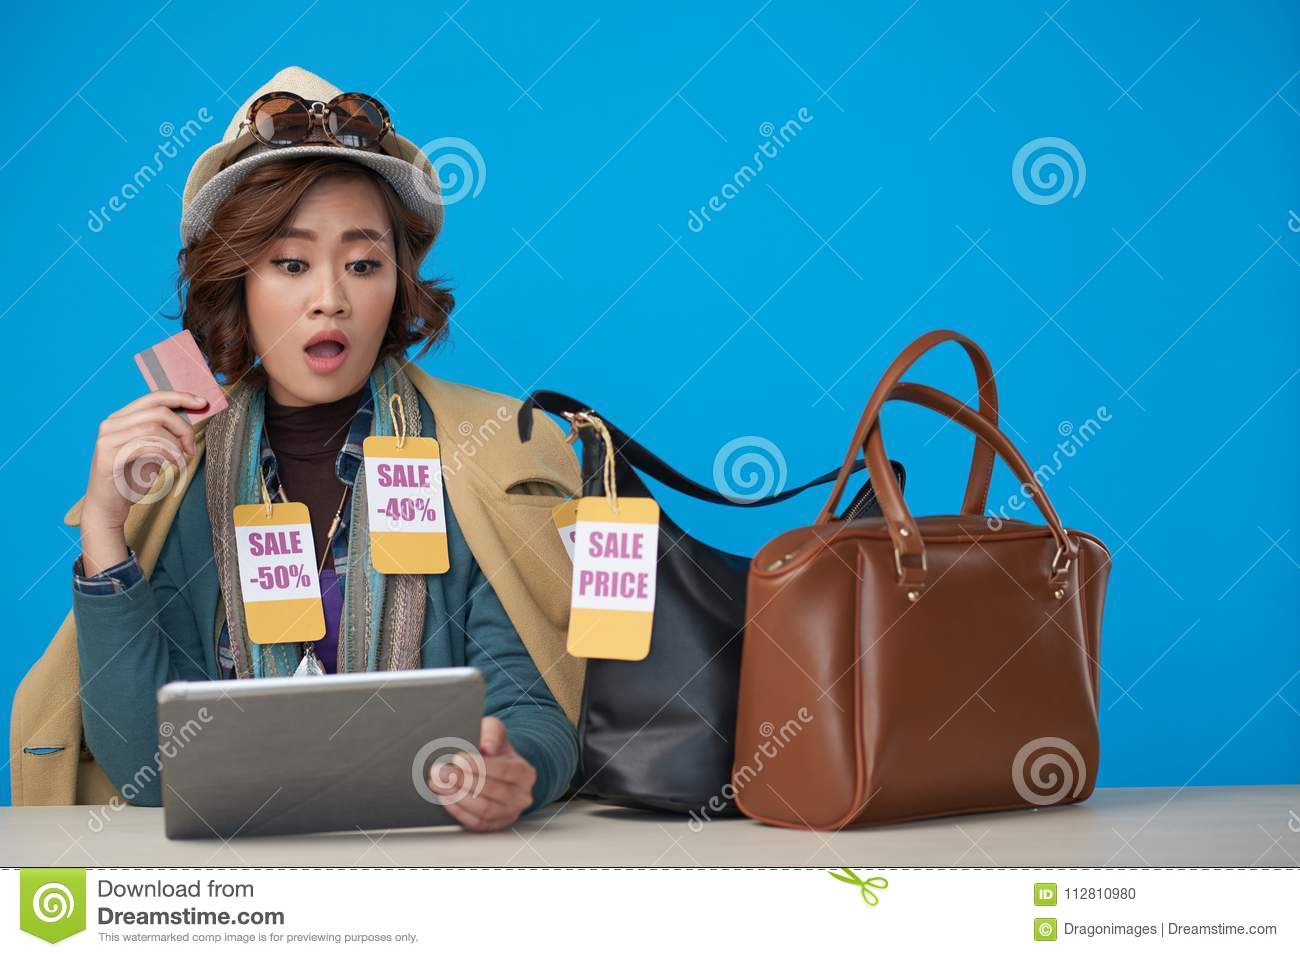 Shopaholic Buying Clothes Online Stock Photo - Image of